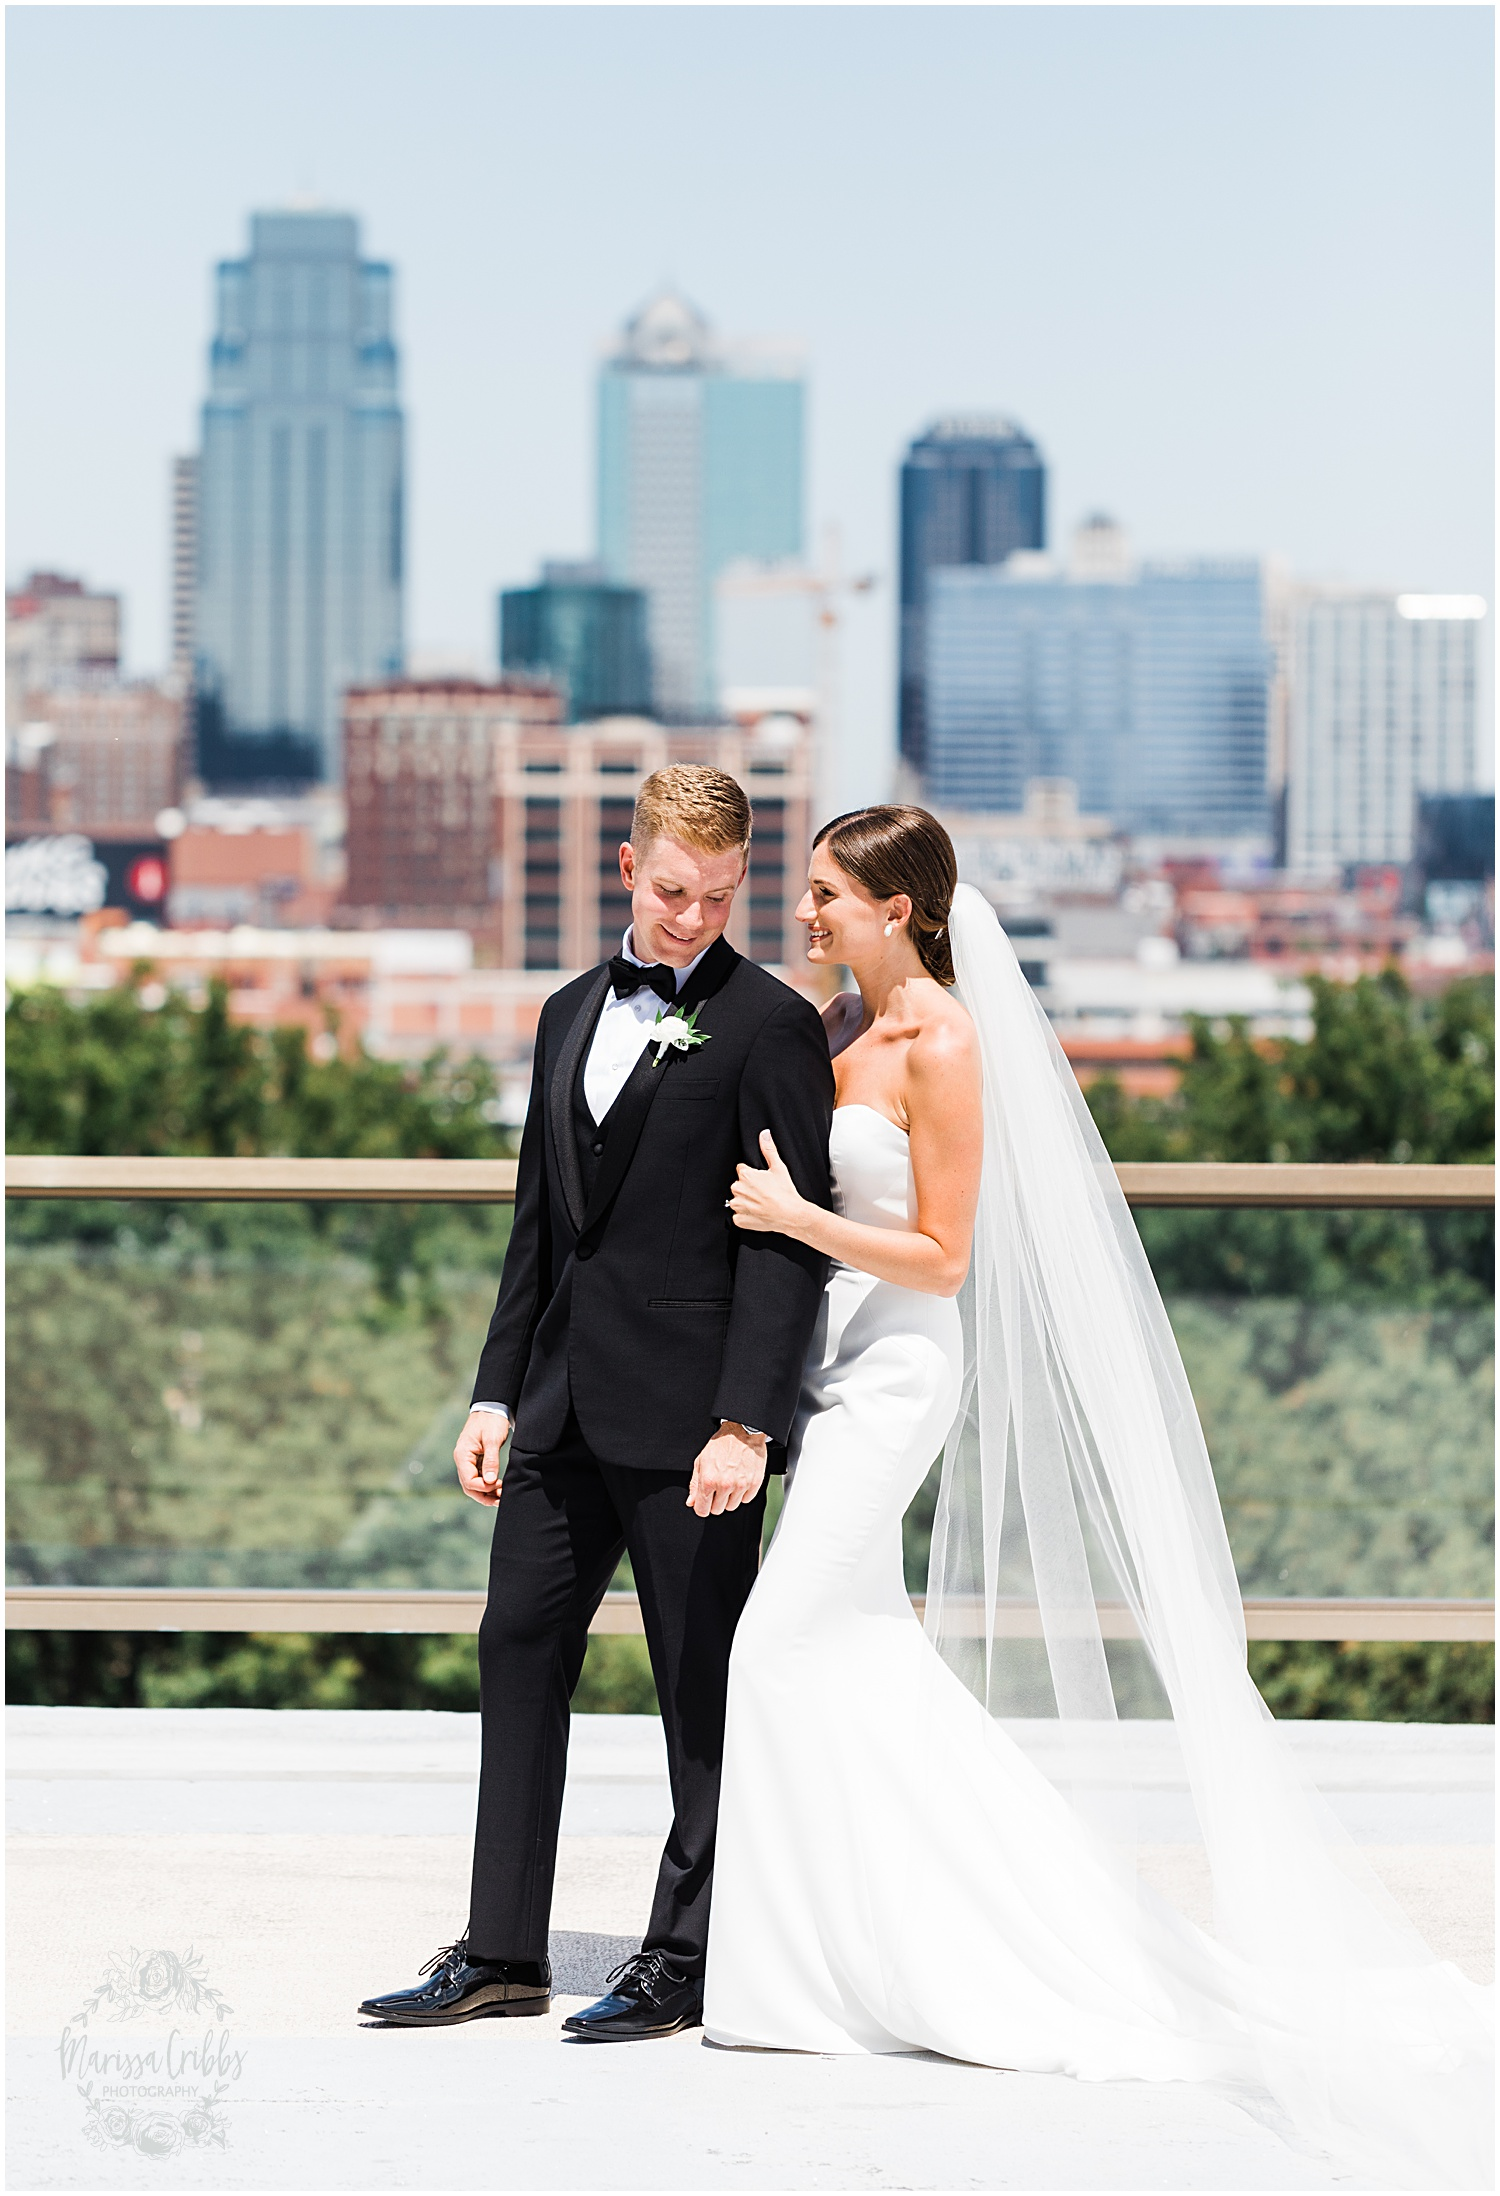 JOANNE & GEORGE MARRIED BLOG | MARISSA CRIBBS PHOTOGRAPHY | THE ABBOTT | KANSAS CITY WEDDING PHOTOS_9029.jpg